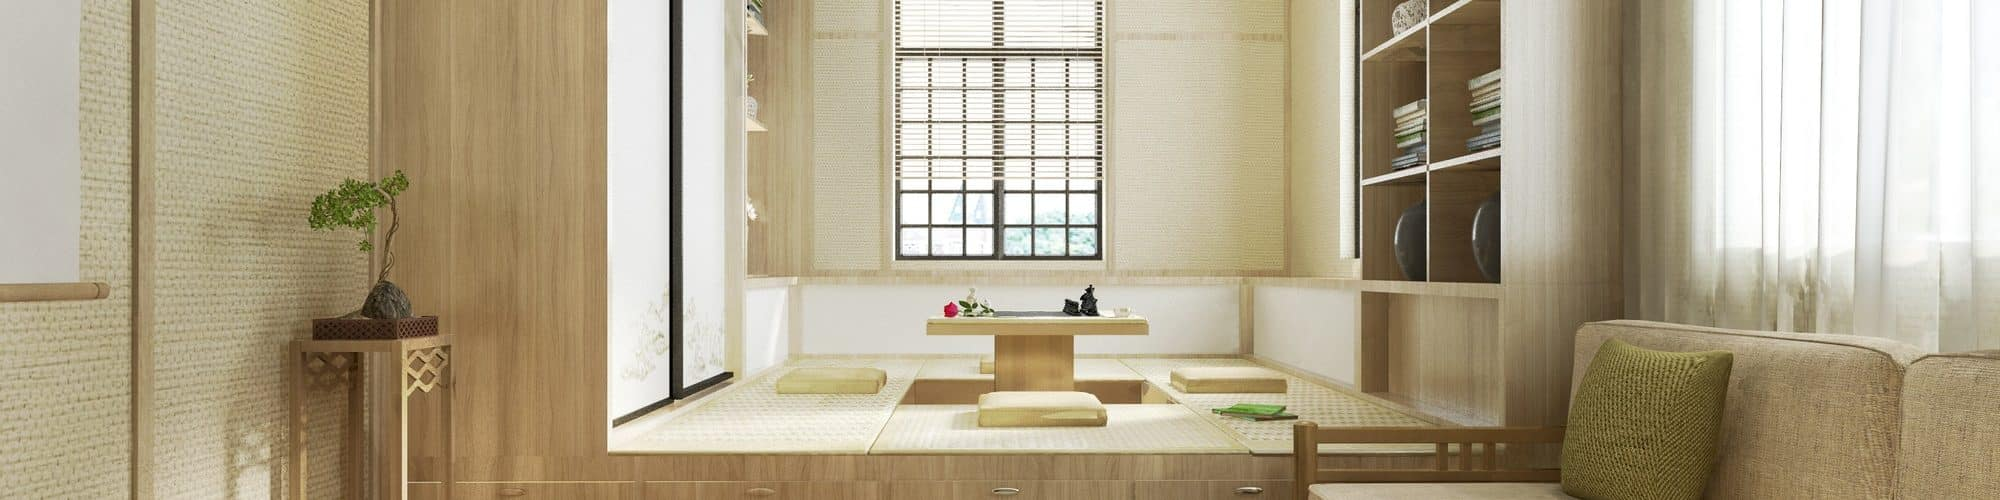 Learn more about Japanese interior design, which focuses on minimalism, practicality, and philosophy to improve wellbeing.